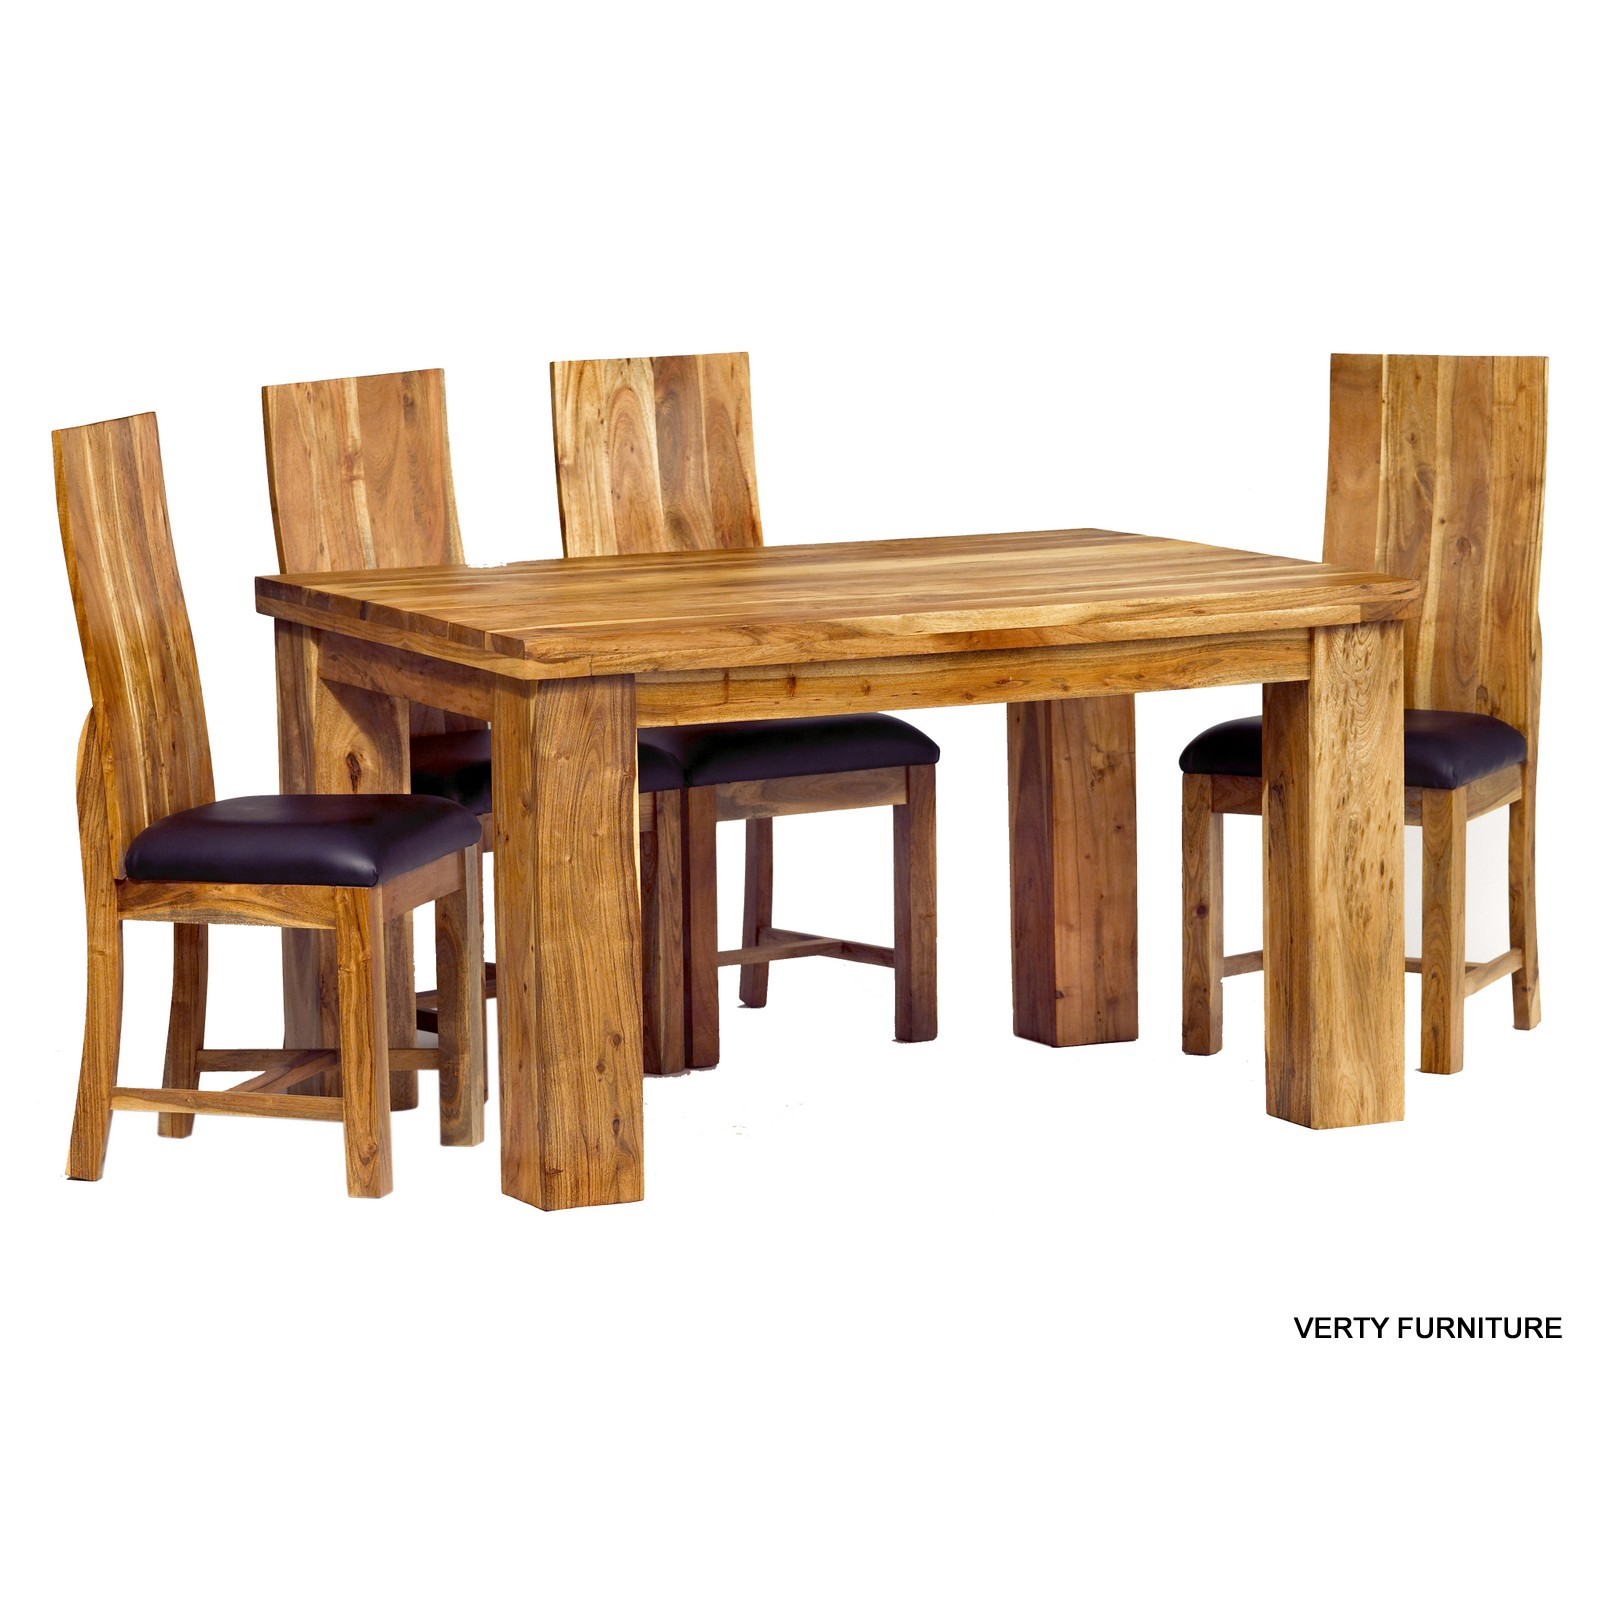 Acacia dining table small with 4 chairs verty indian for Small dining table set for 4